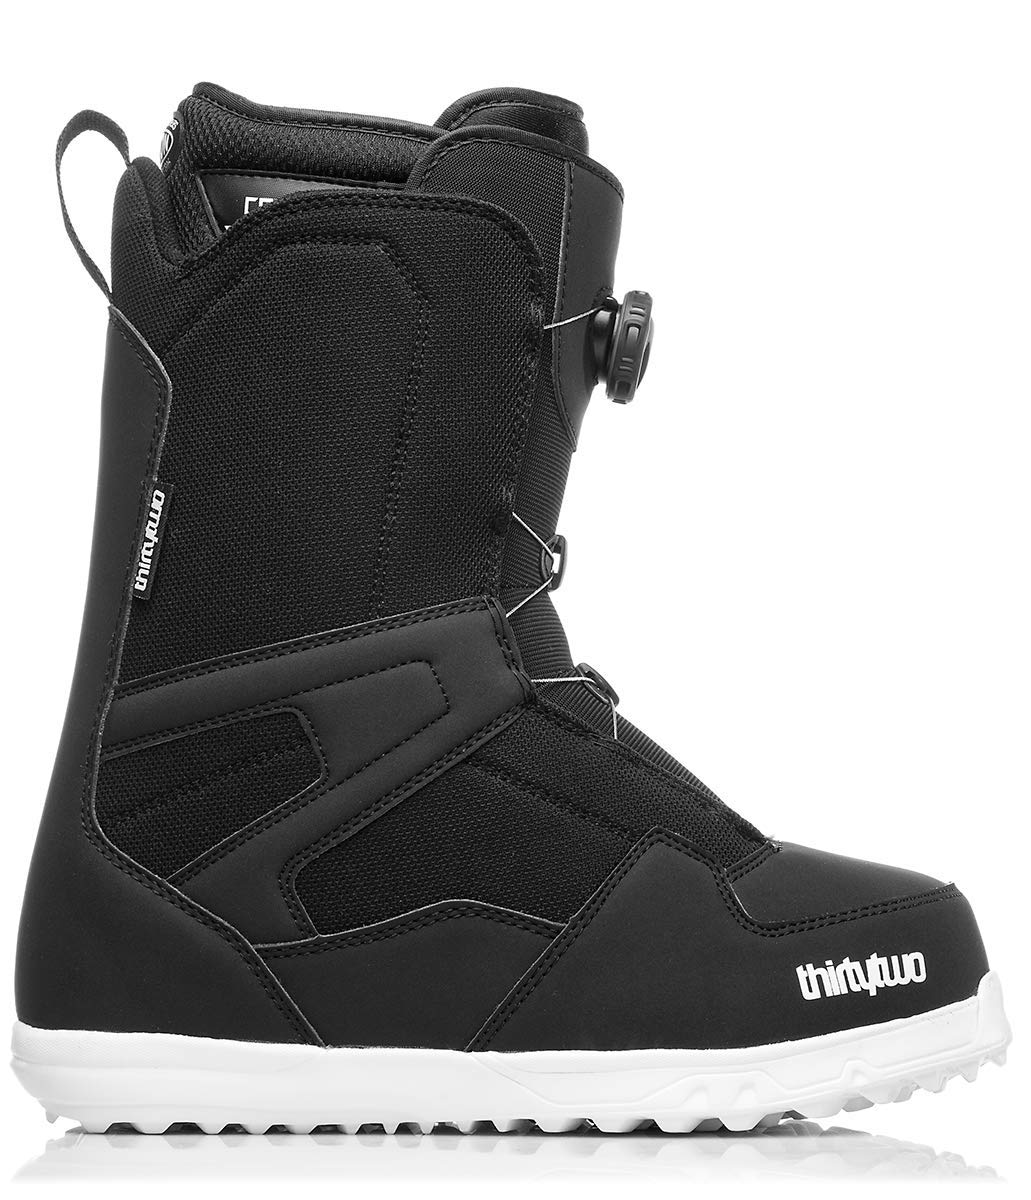 thirtytwo Shifty Boa '18 Snowboard Boots, Black, 14 ThirtyTwo Snowboard Boots 8105000323